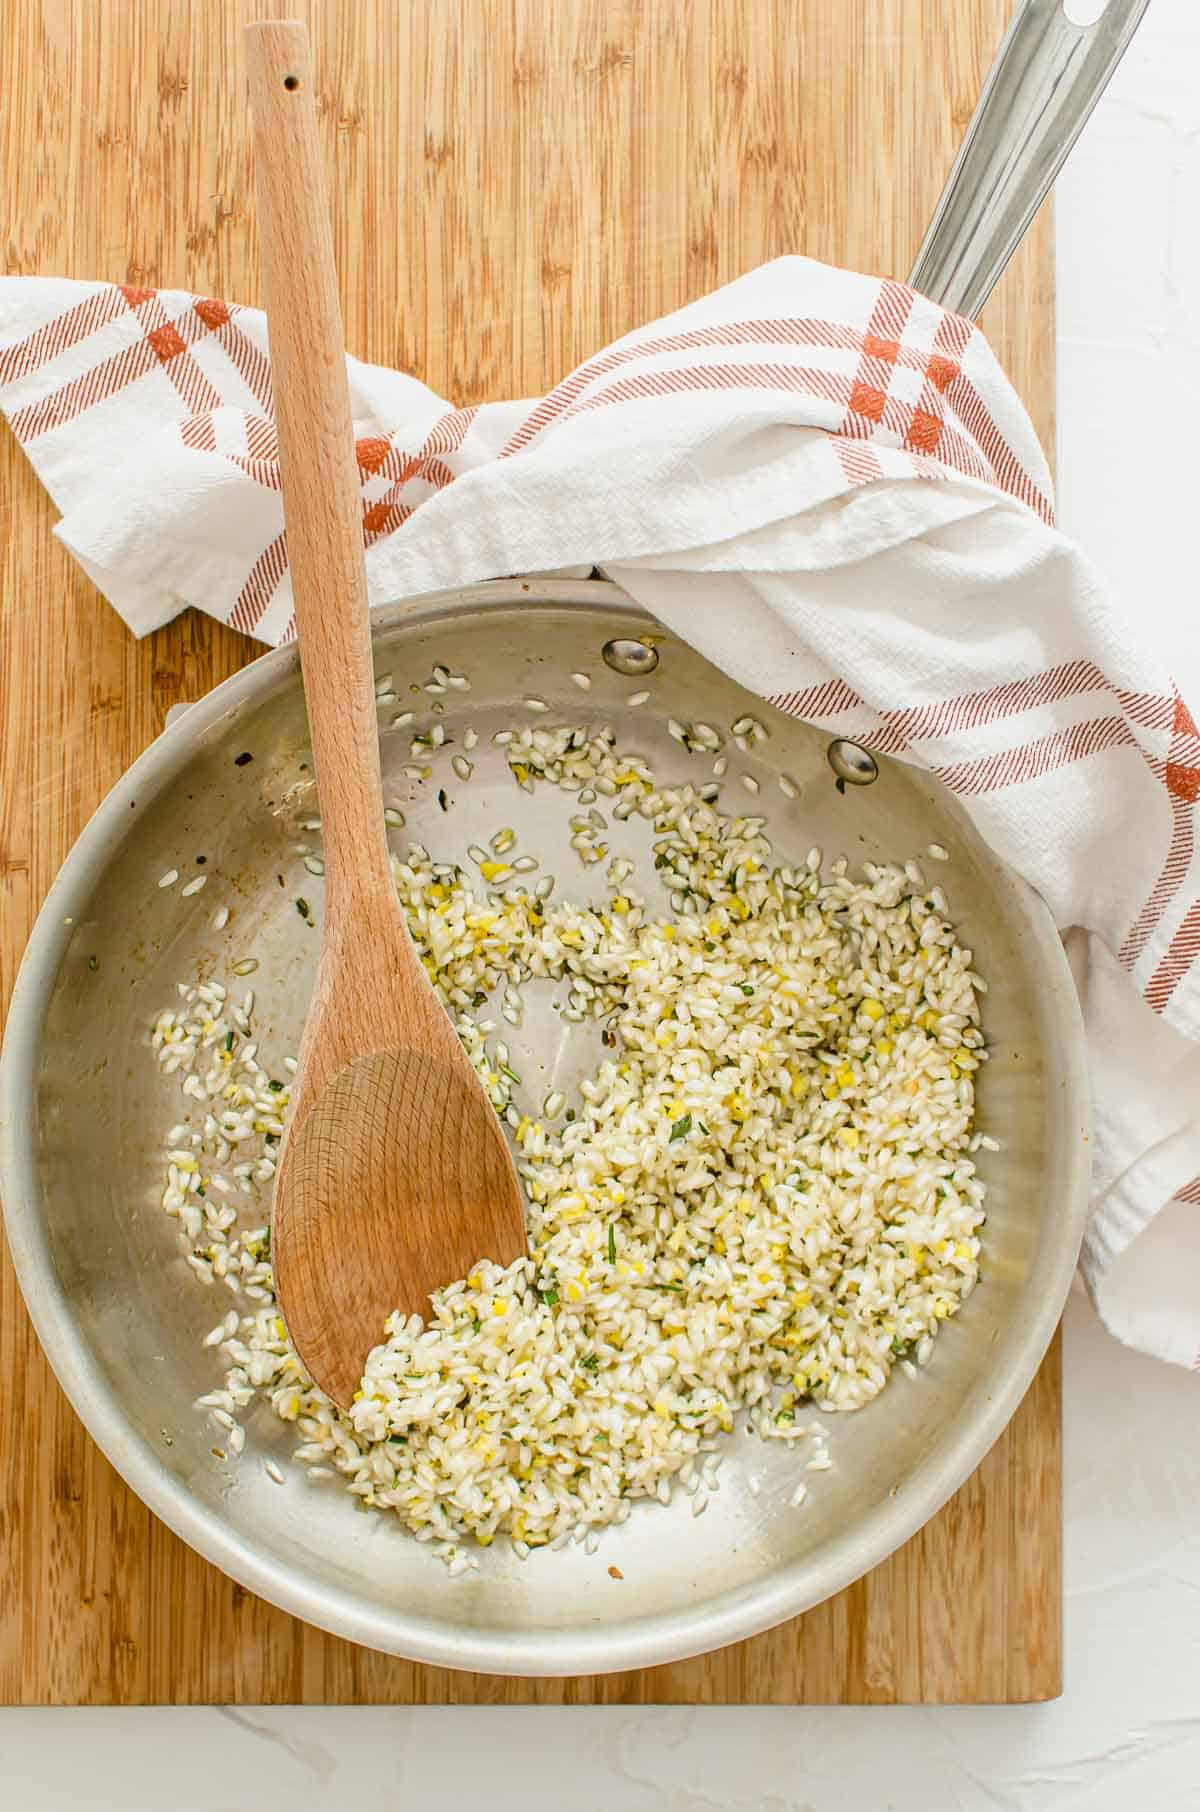 Dry arborio rice heating up in a pan with rosemary and sage.